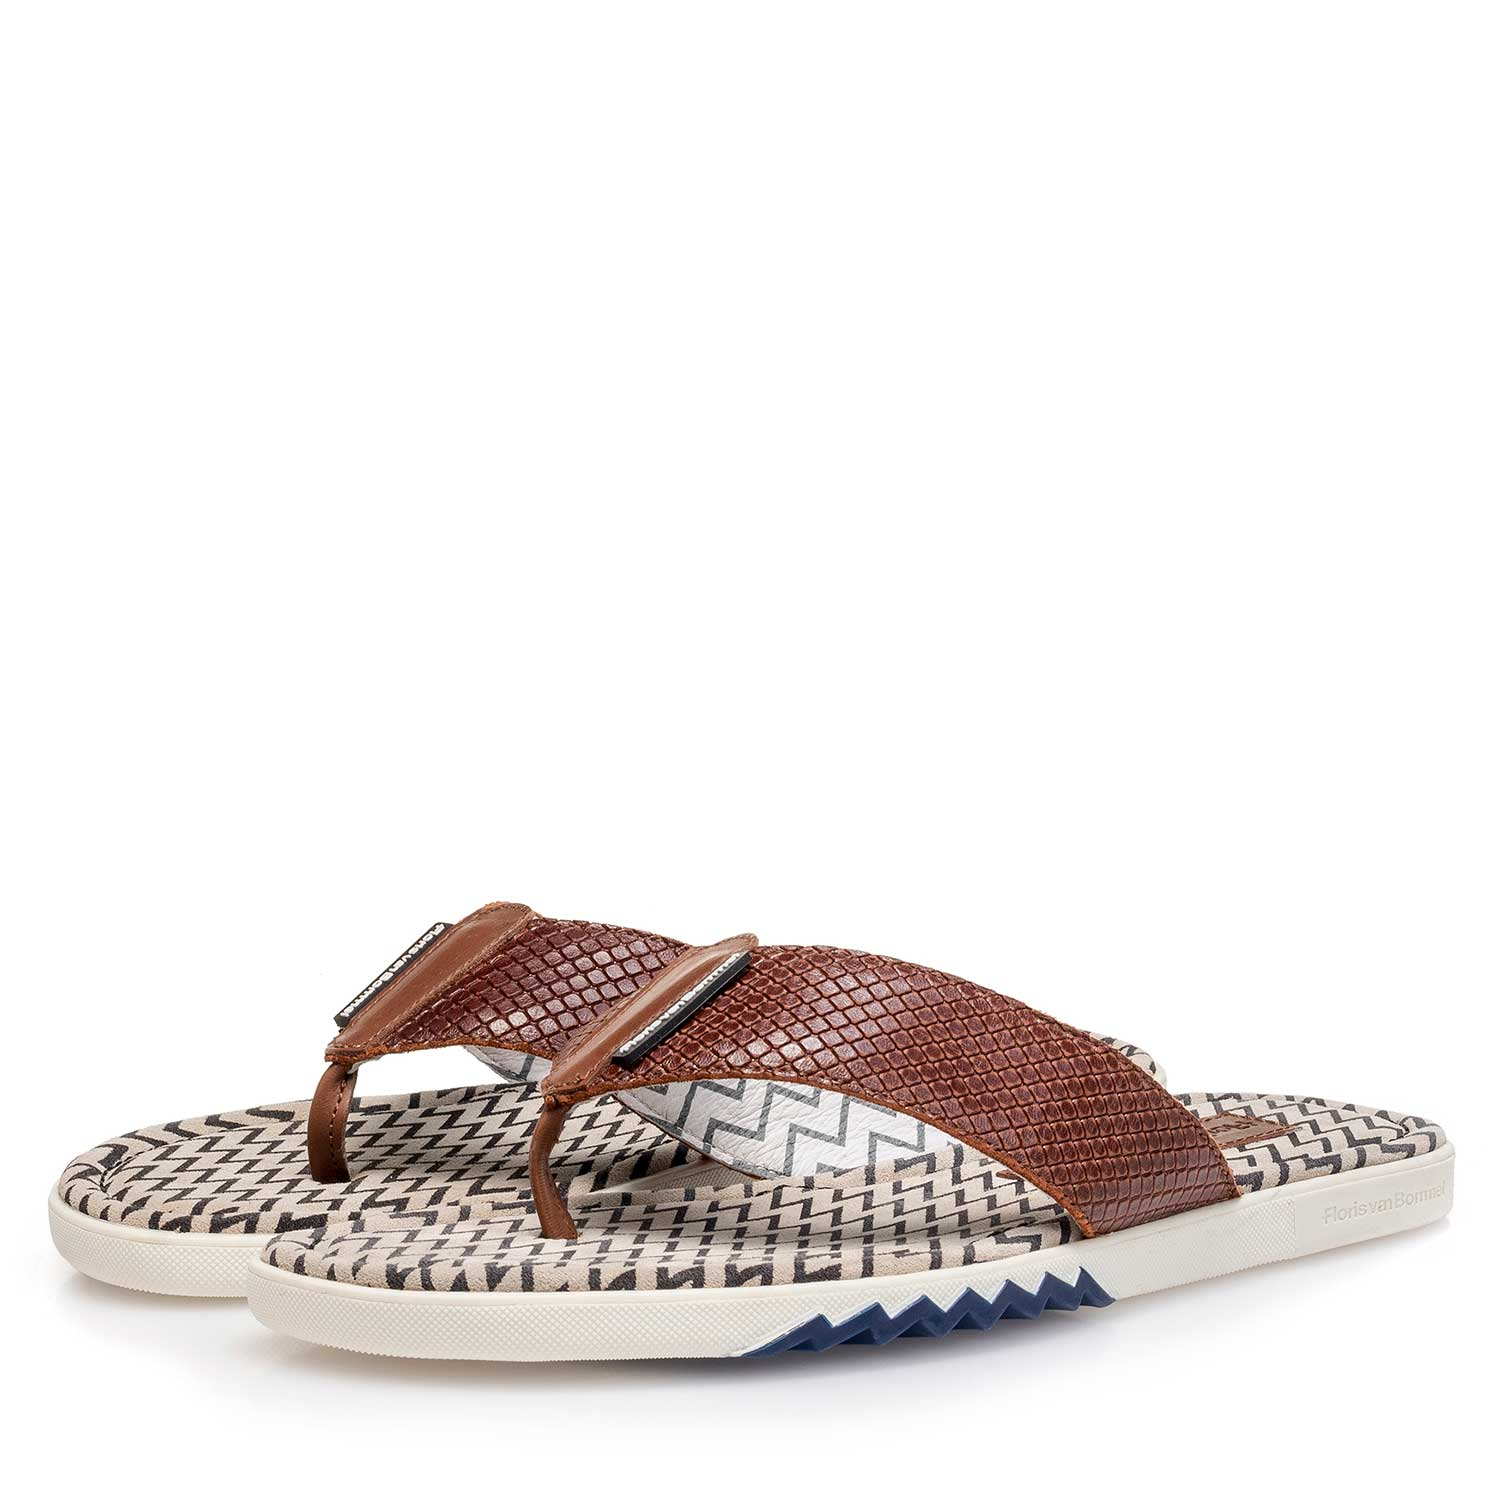 20201/01 - Cognac-coloured printed leather thong slipper